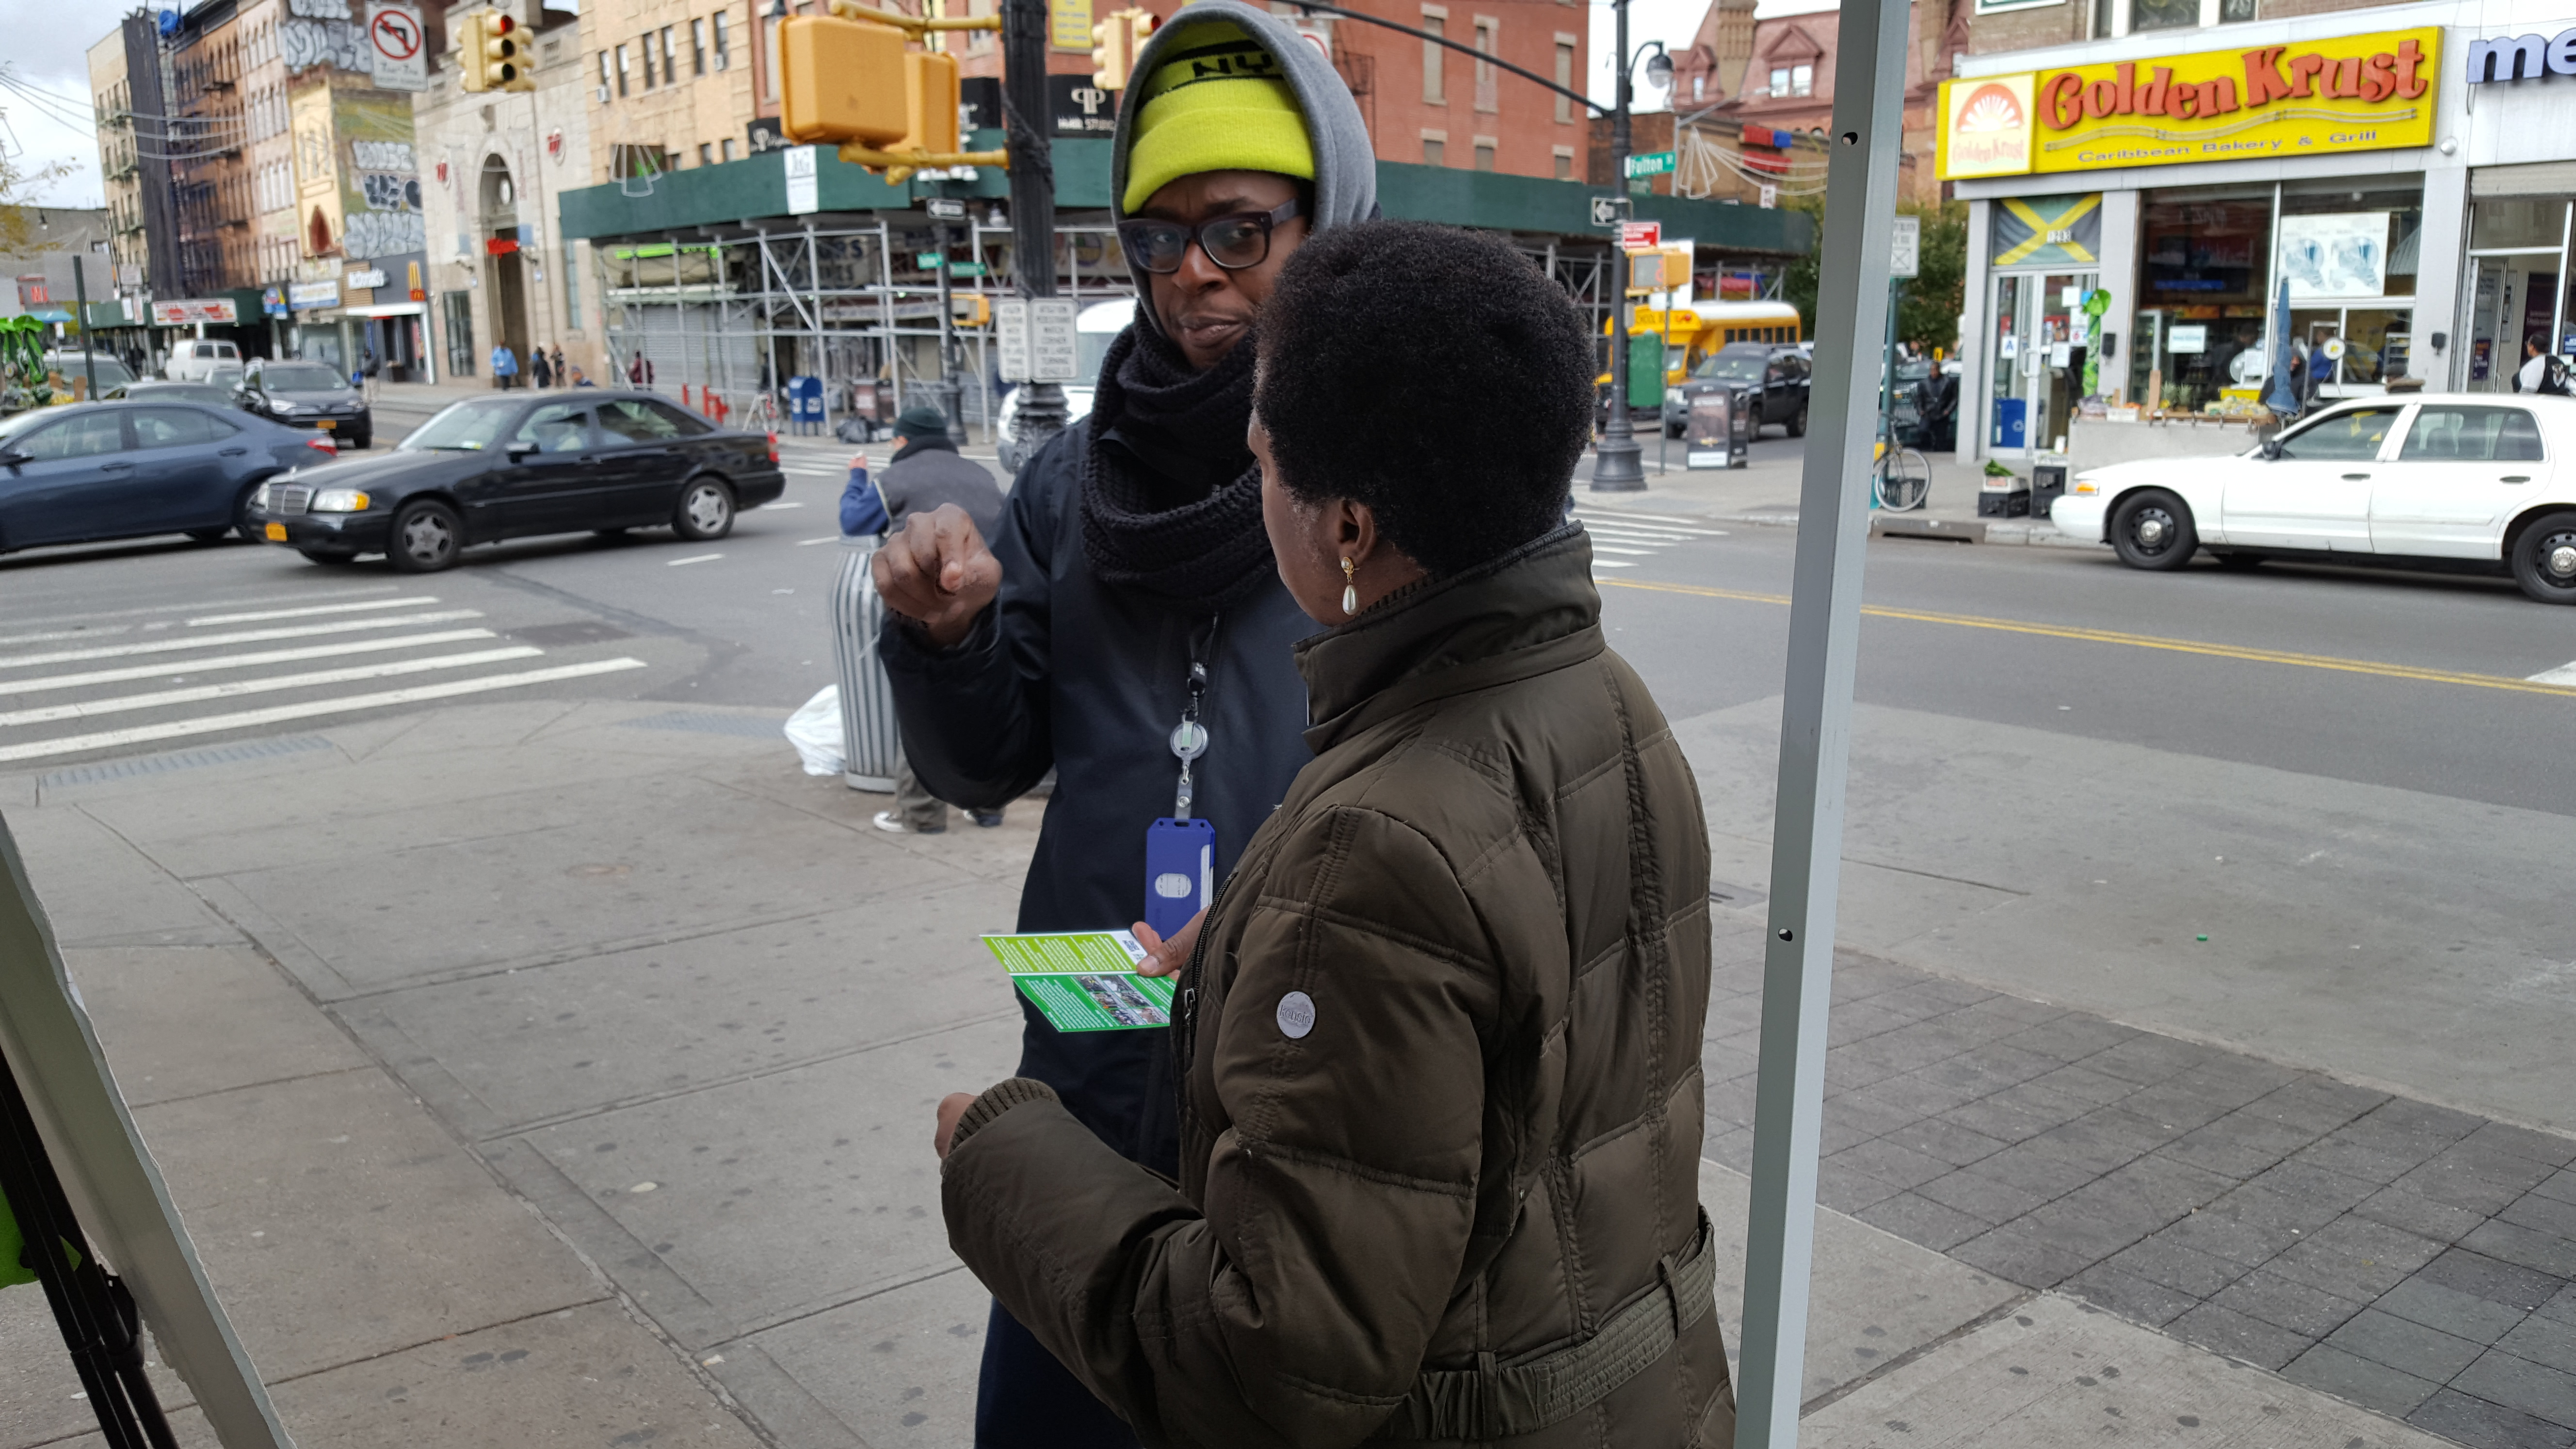 An Ambassador discusses traffic safety concerns in the neighborhood with a passerby